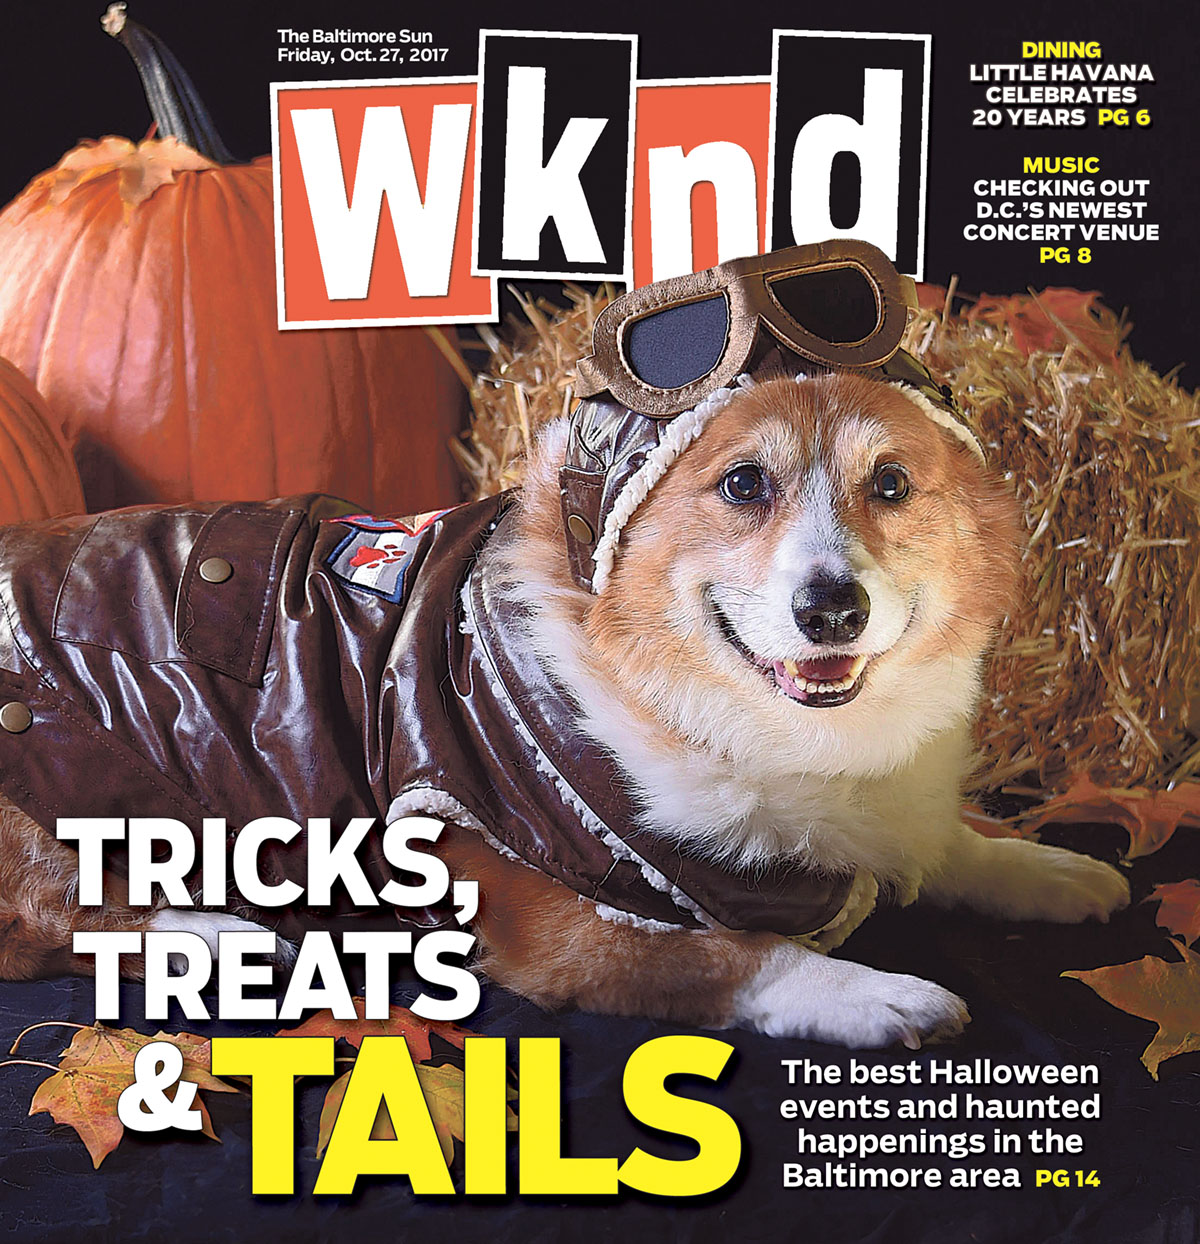 Behind the Wknd Halloween cover